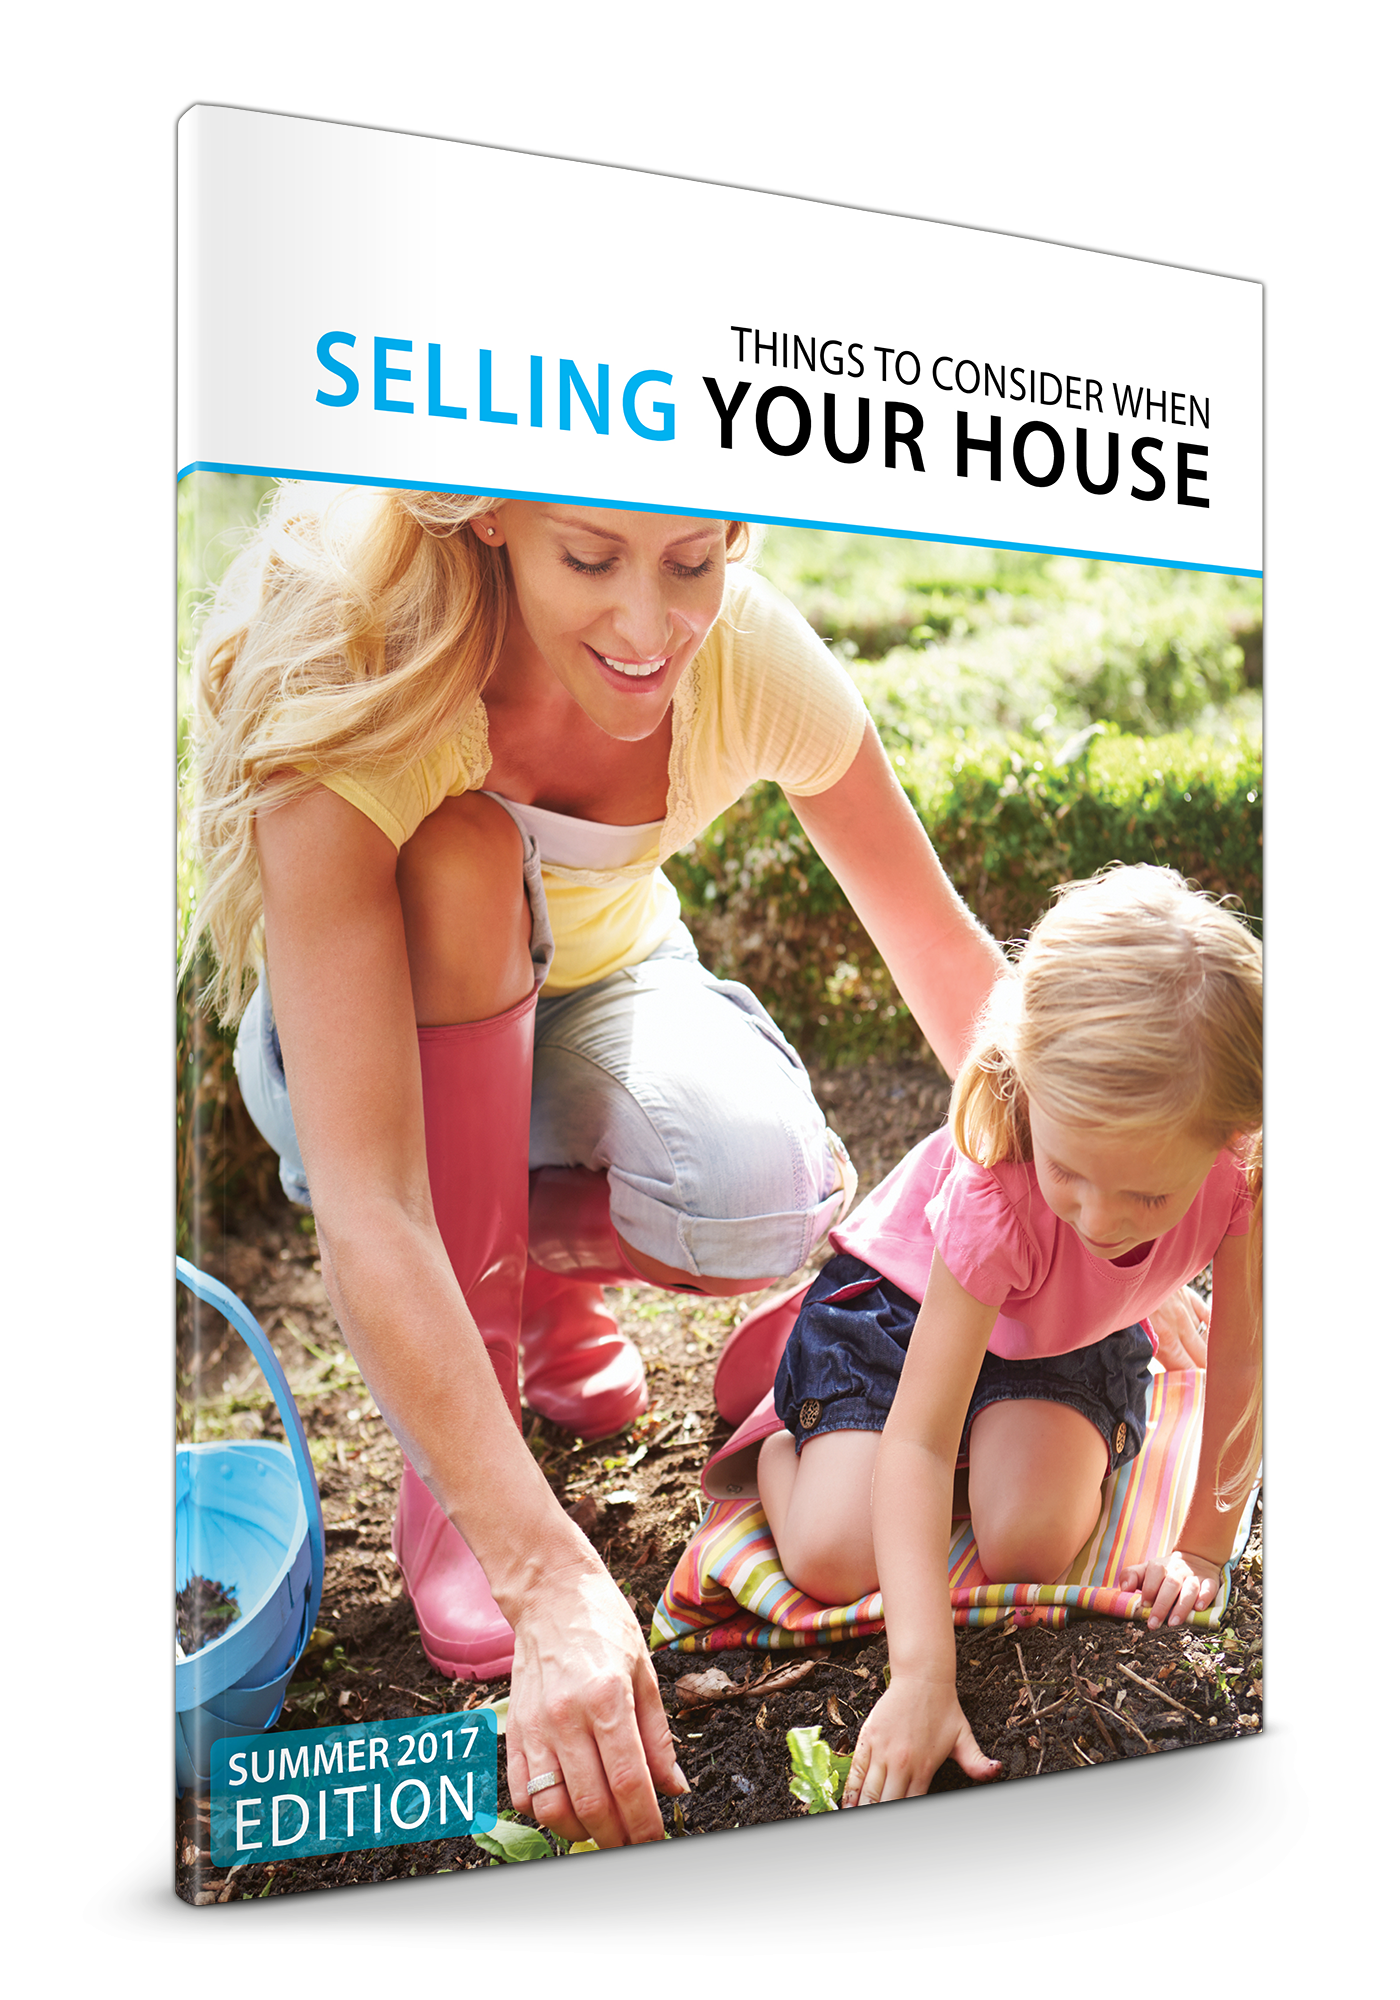 Selling Your House Guide - graphic